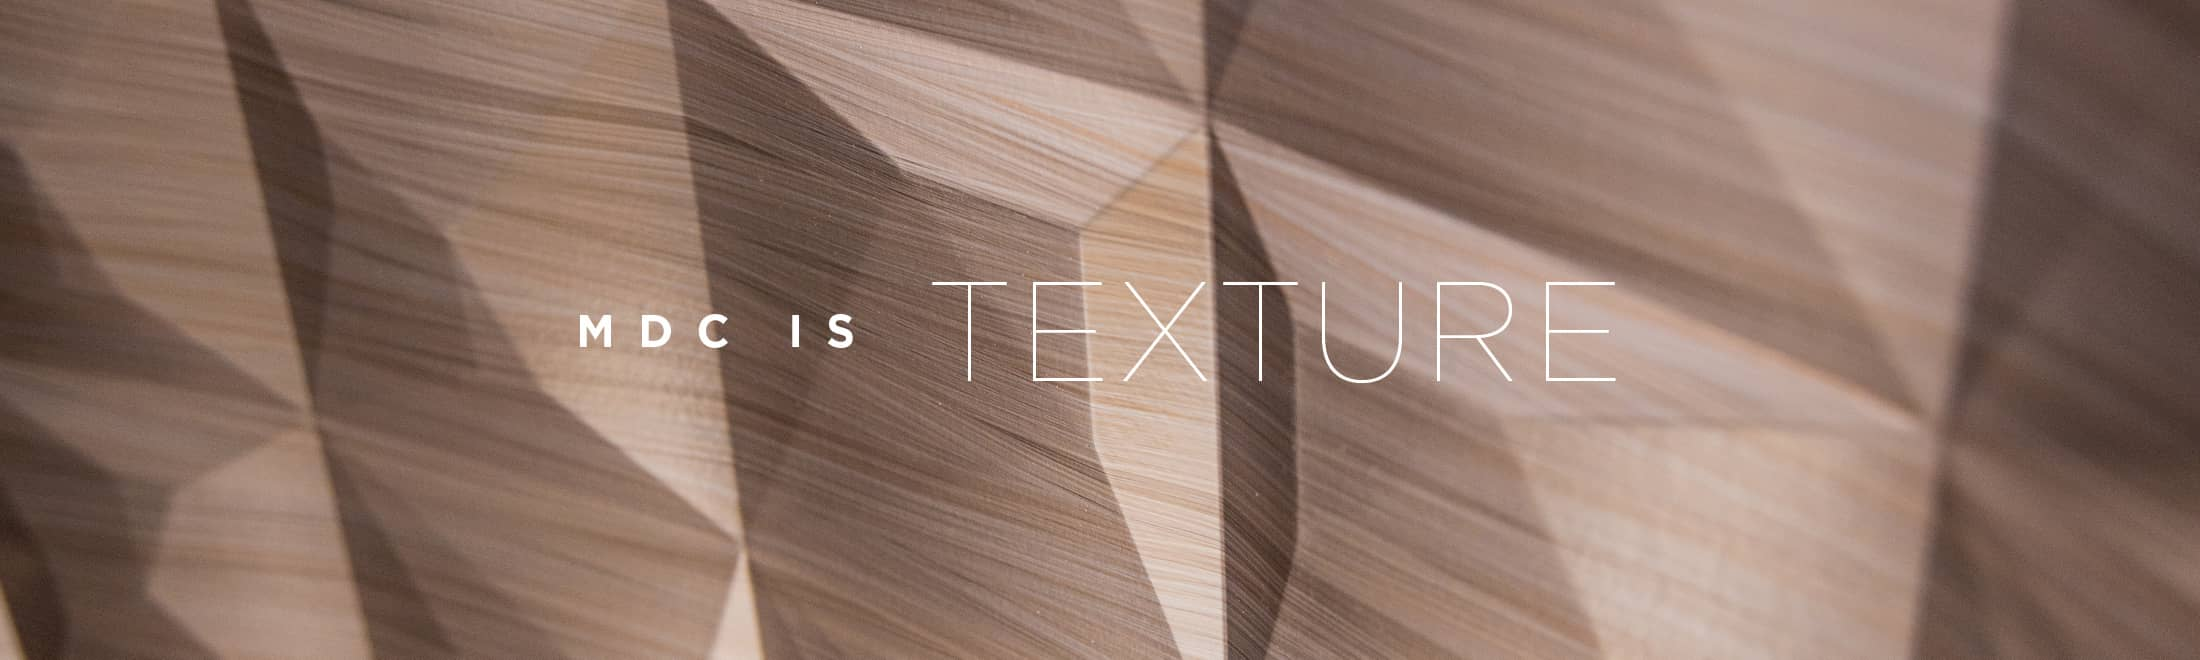 MDC is Texture